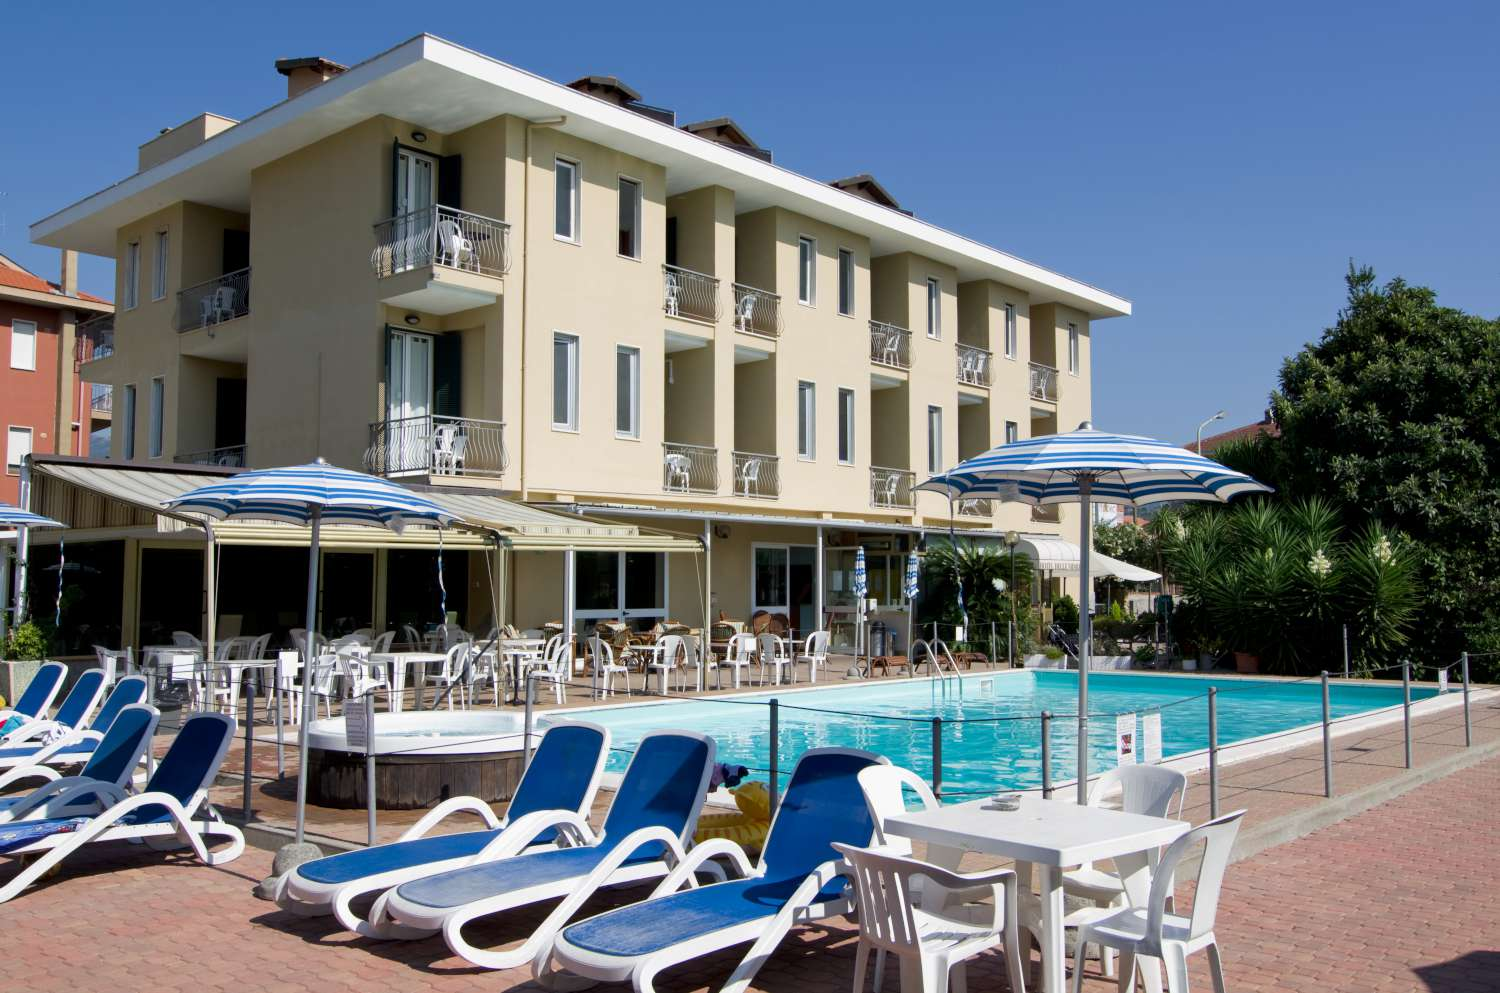 Hotel Delle Mimose Home Page